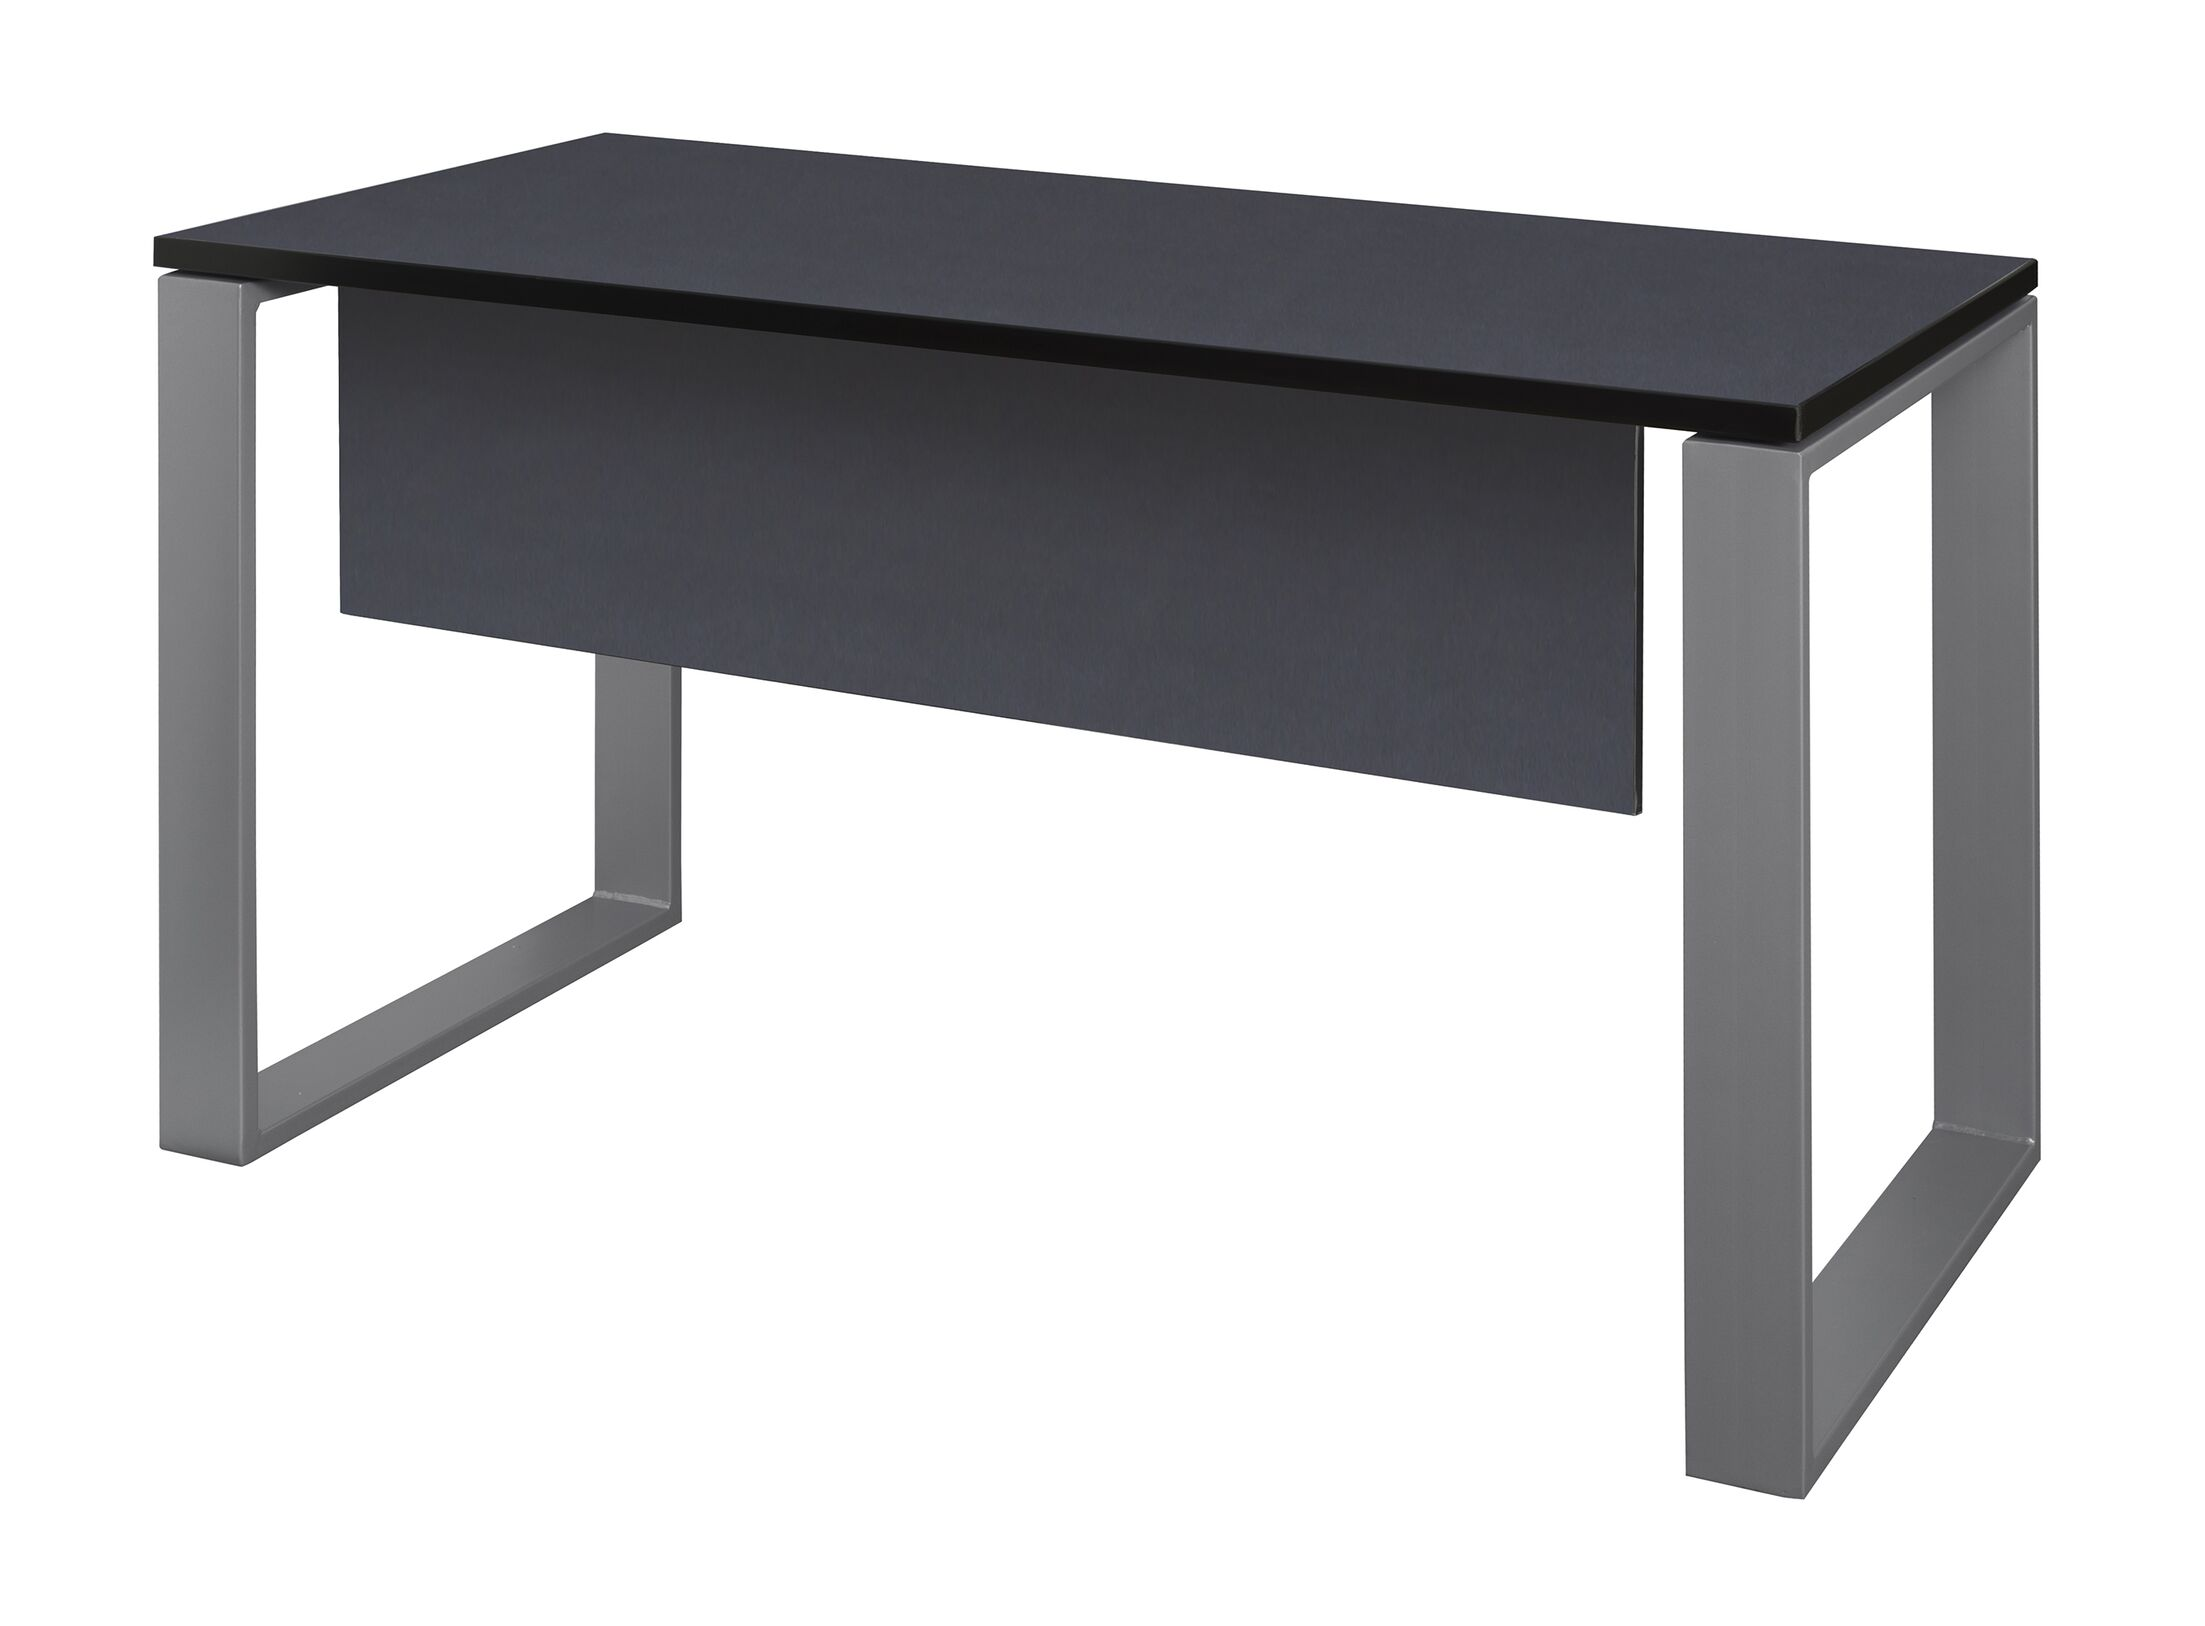 Mireya Training Table with Modesty Panel Base Finish: Gray, Tabletop Finish: Gray, Size: 29